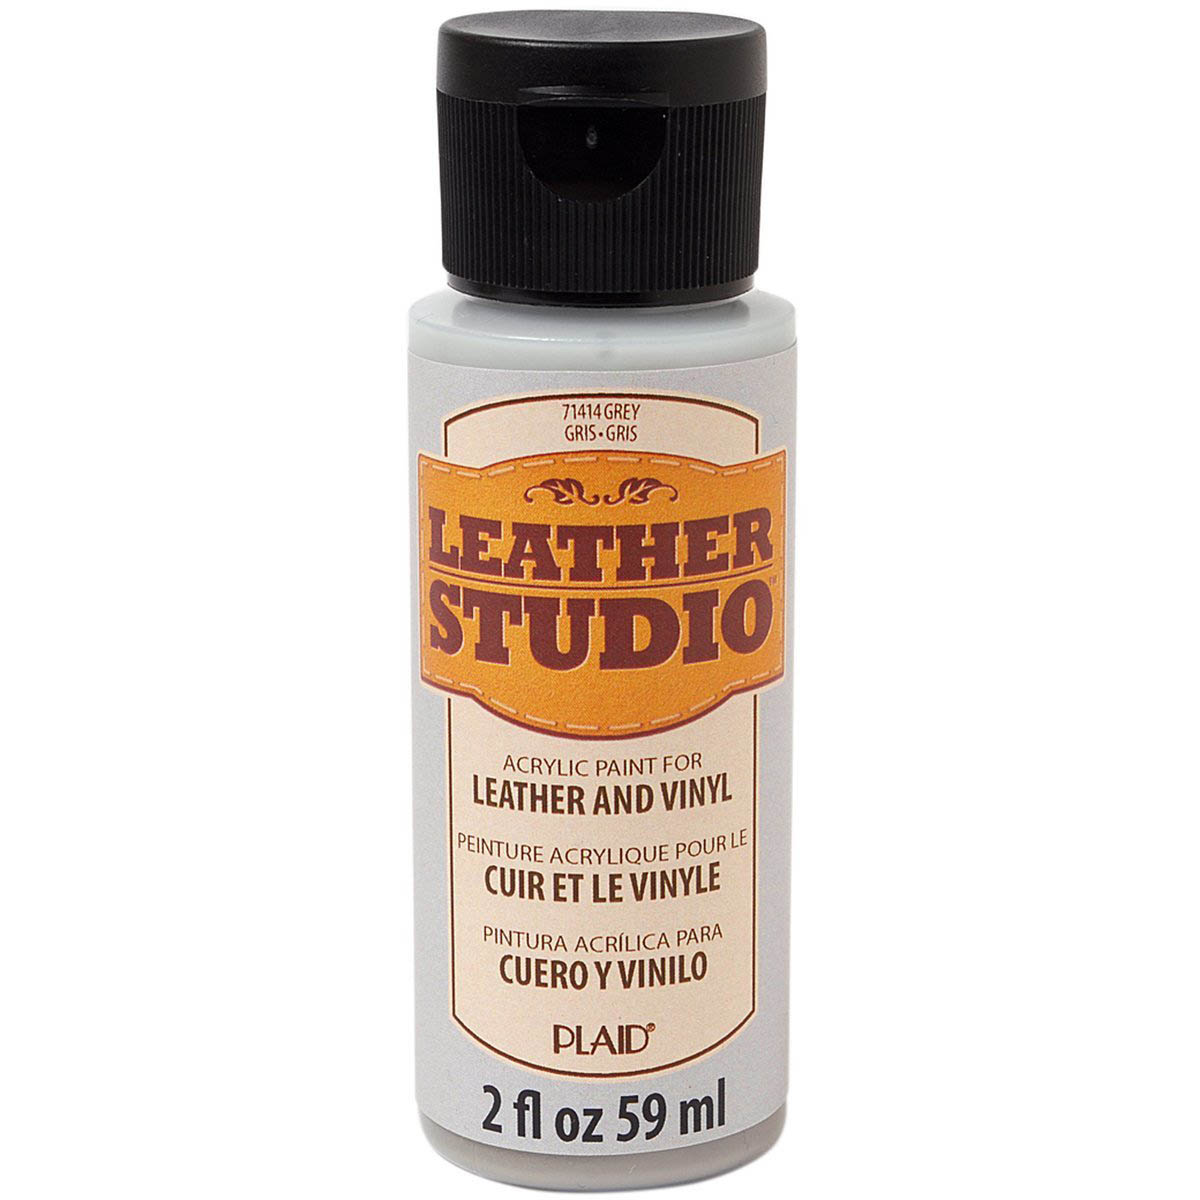 Leather Studio™ Leather & Vinyl Paint Colors - Grey, 2 oz. - 71414